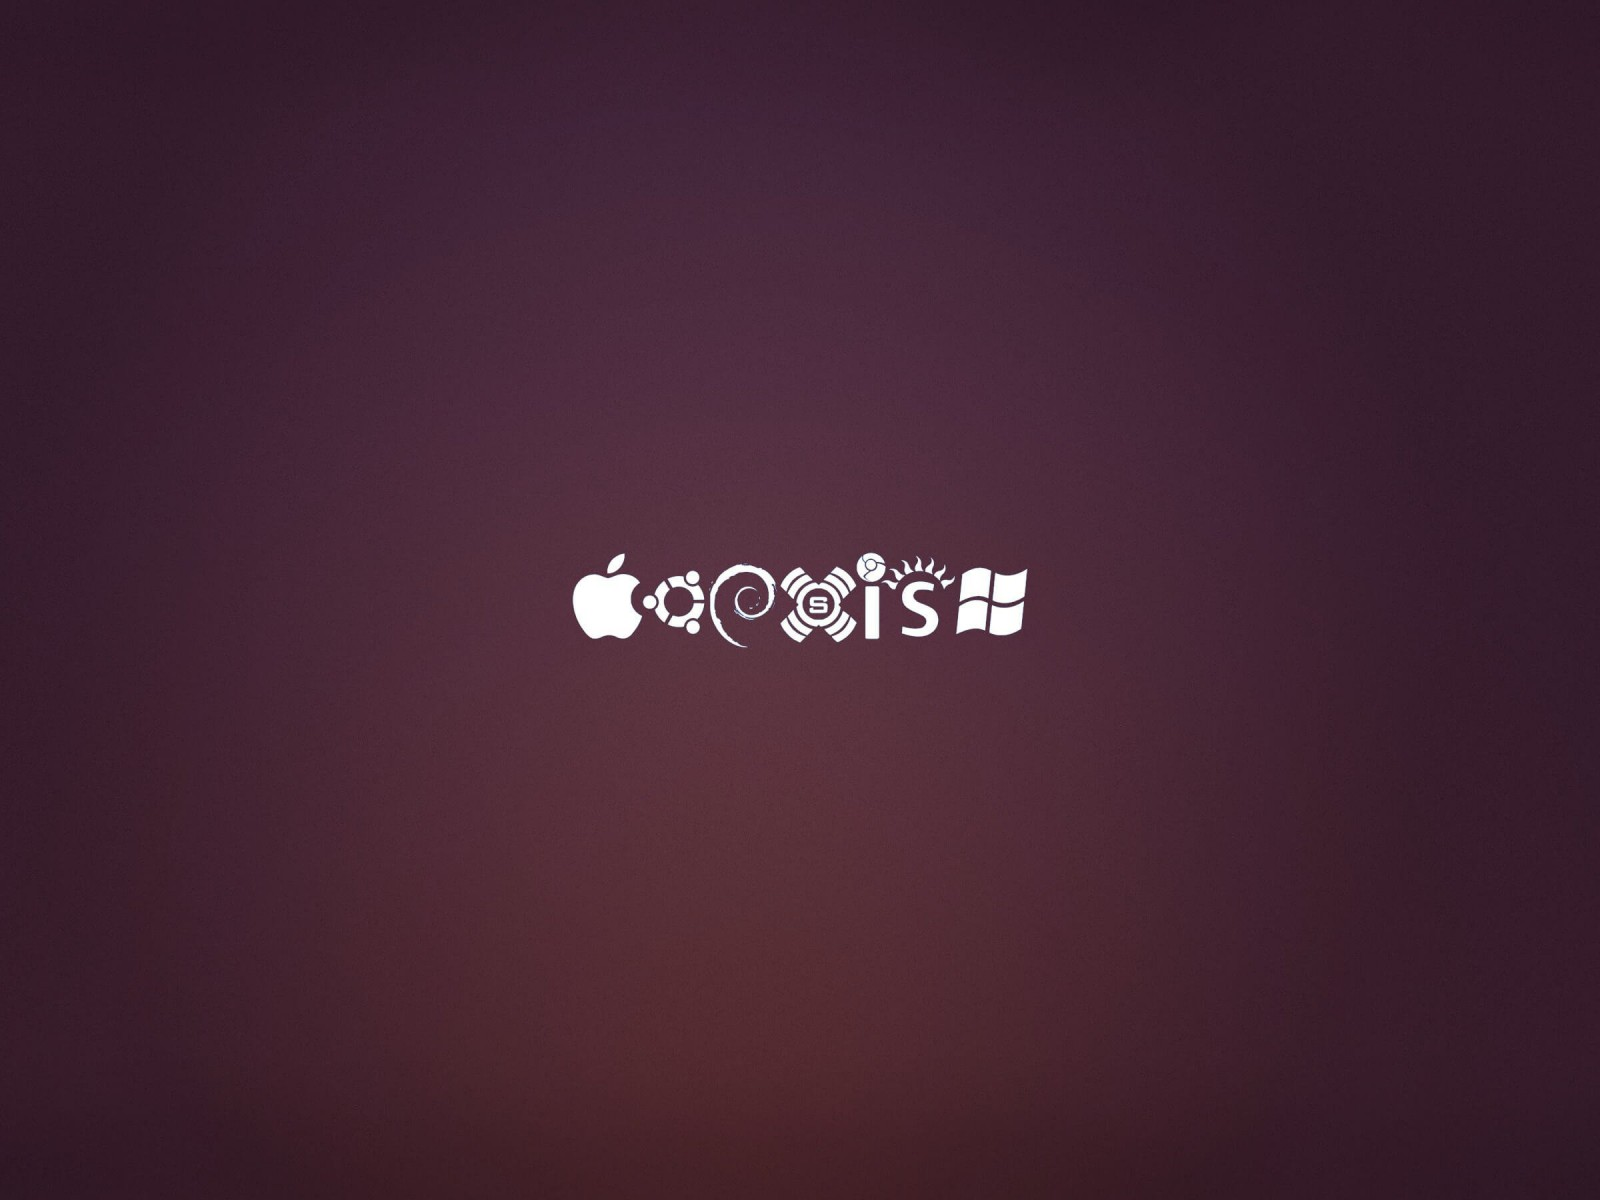 Os coexist hd wallpaper for 1600x1200 screens for Wallpaper for